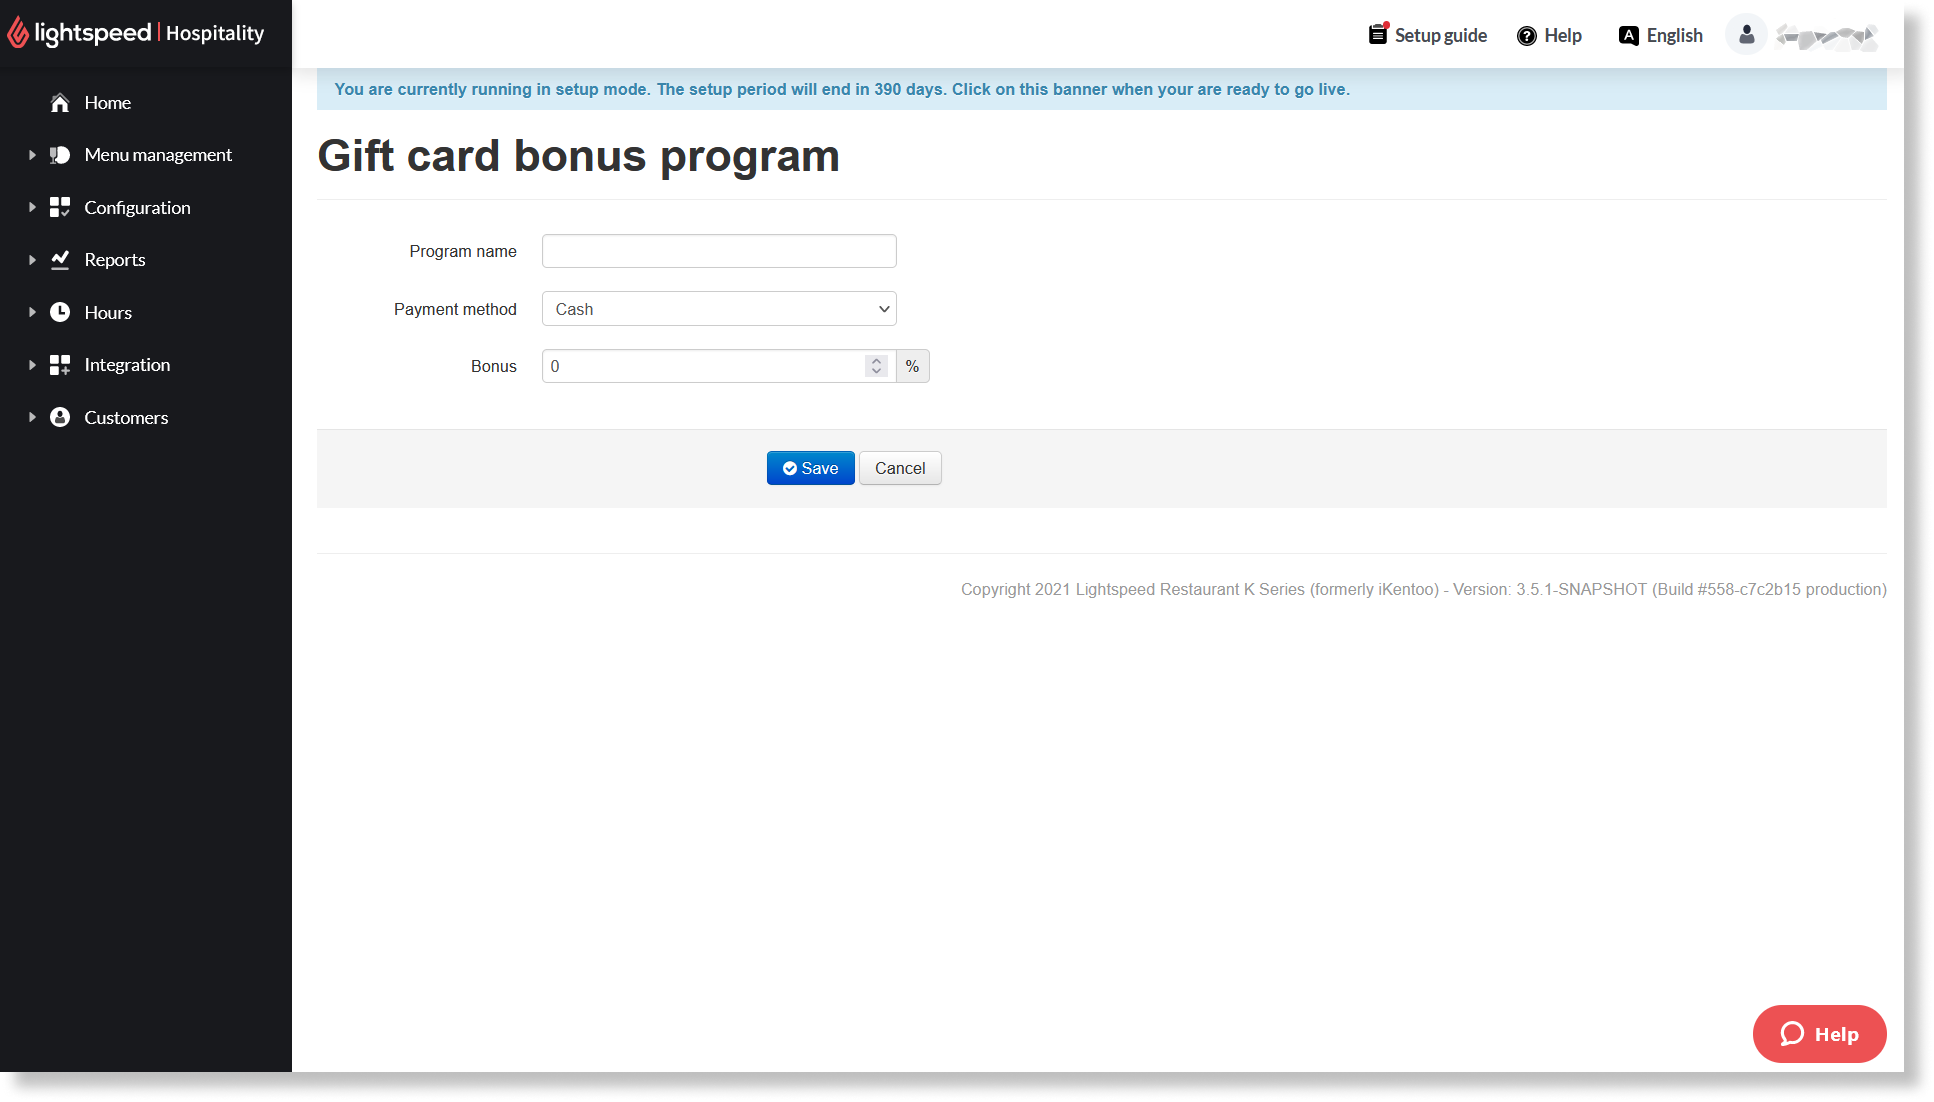 lsk-nv-customers-loyalty_cards-card_batches-gift-create_a_gift_card_bonus_program-form-ds.png